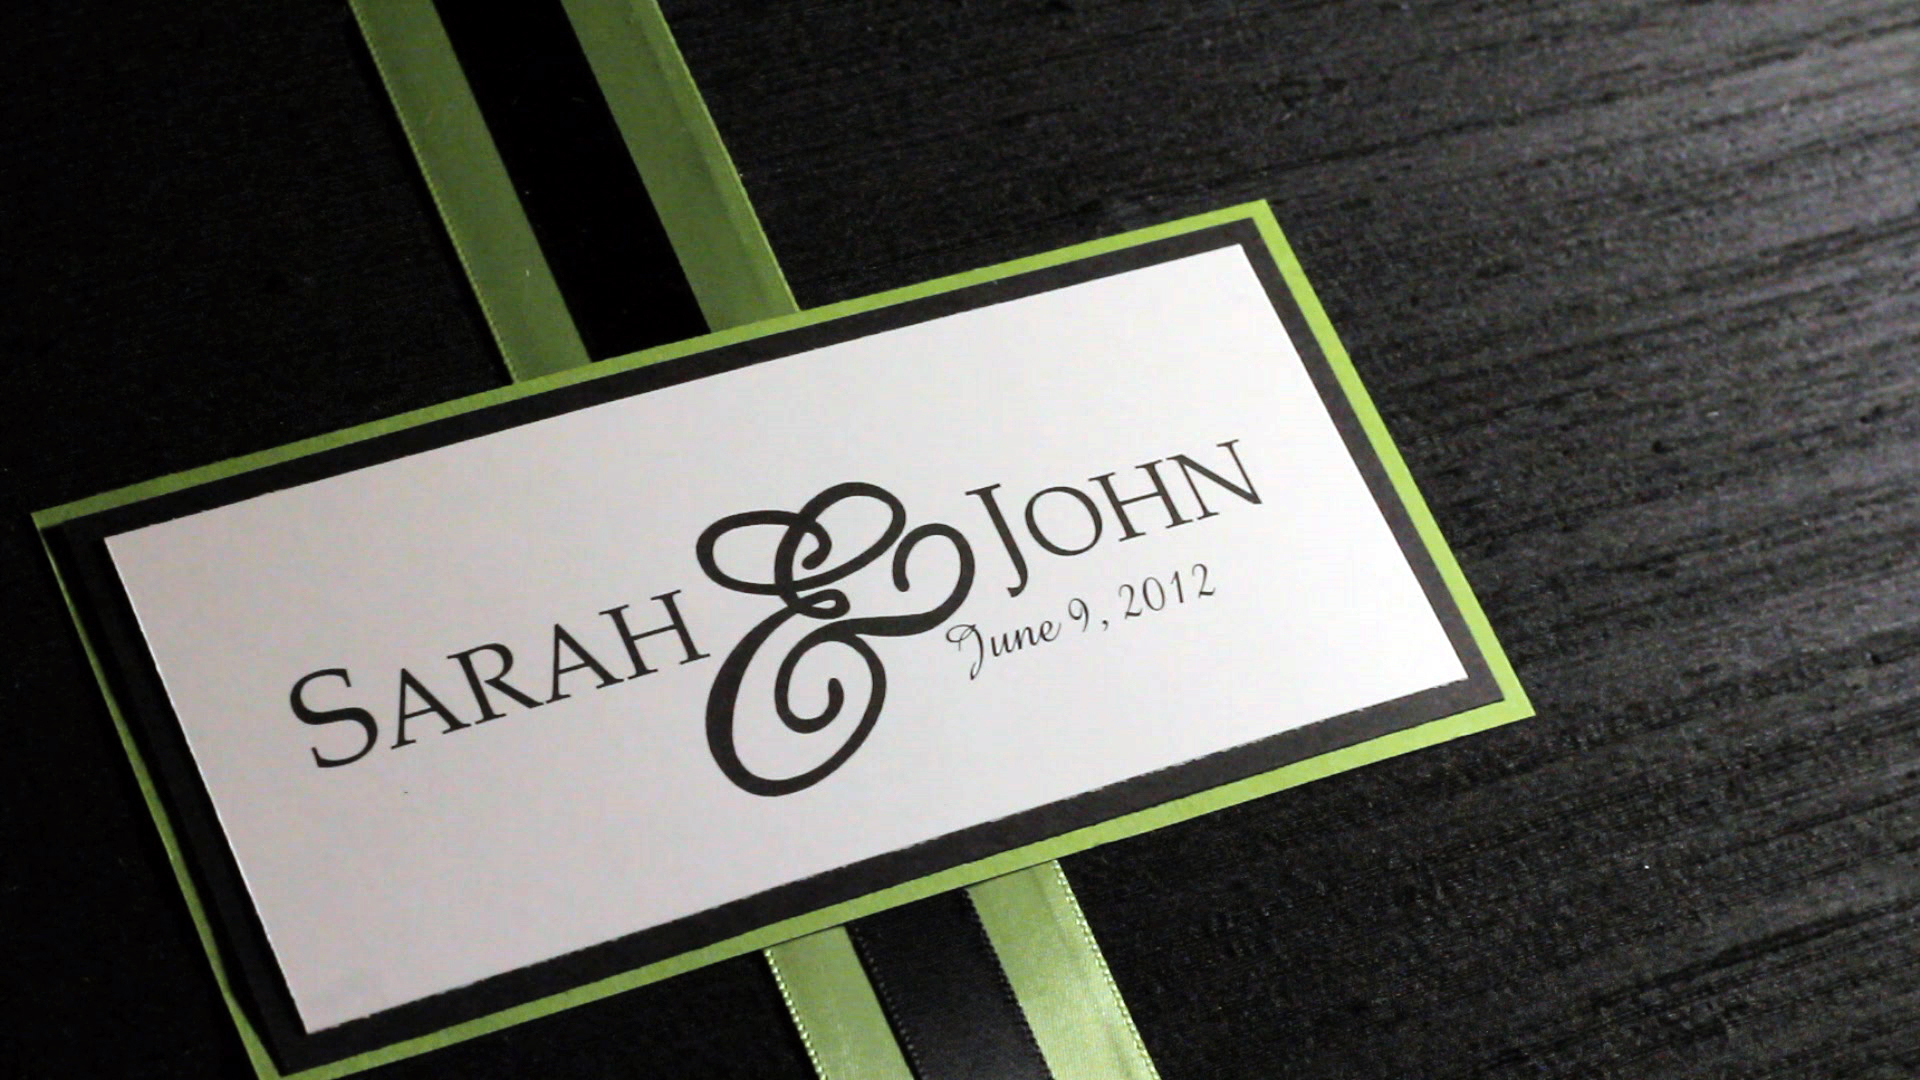 Sarah and John's name card